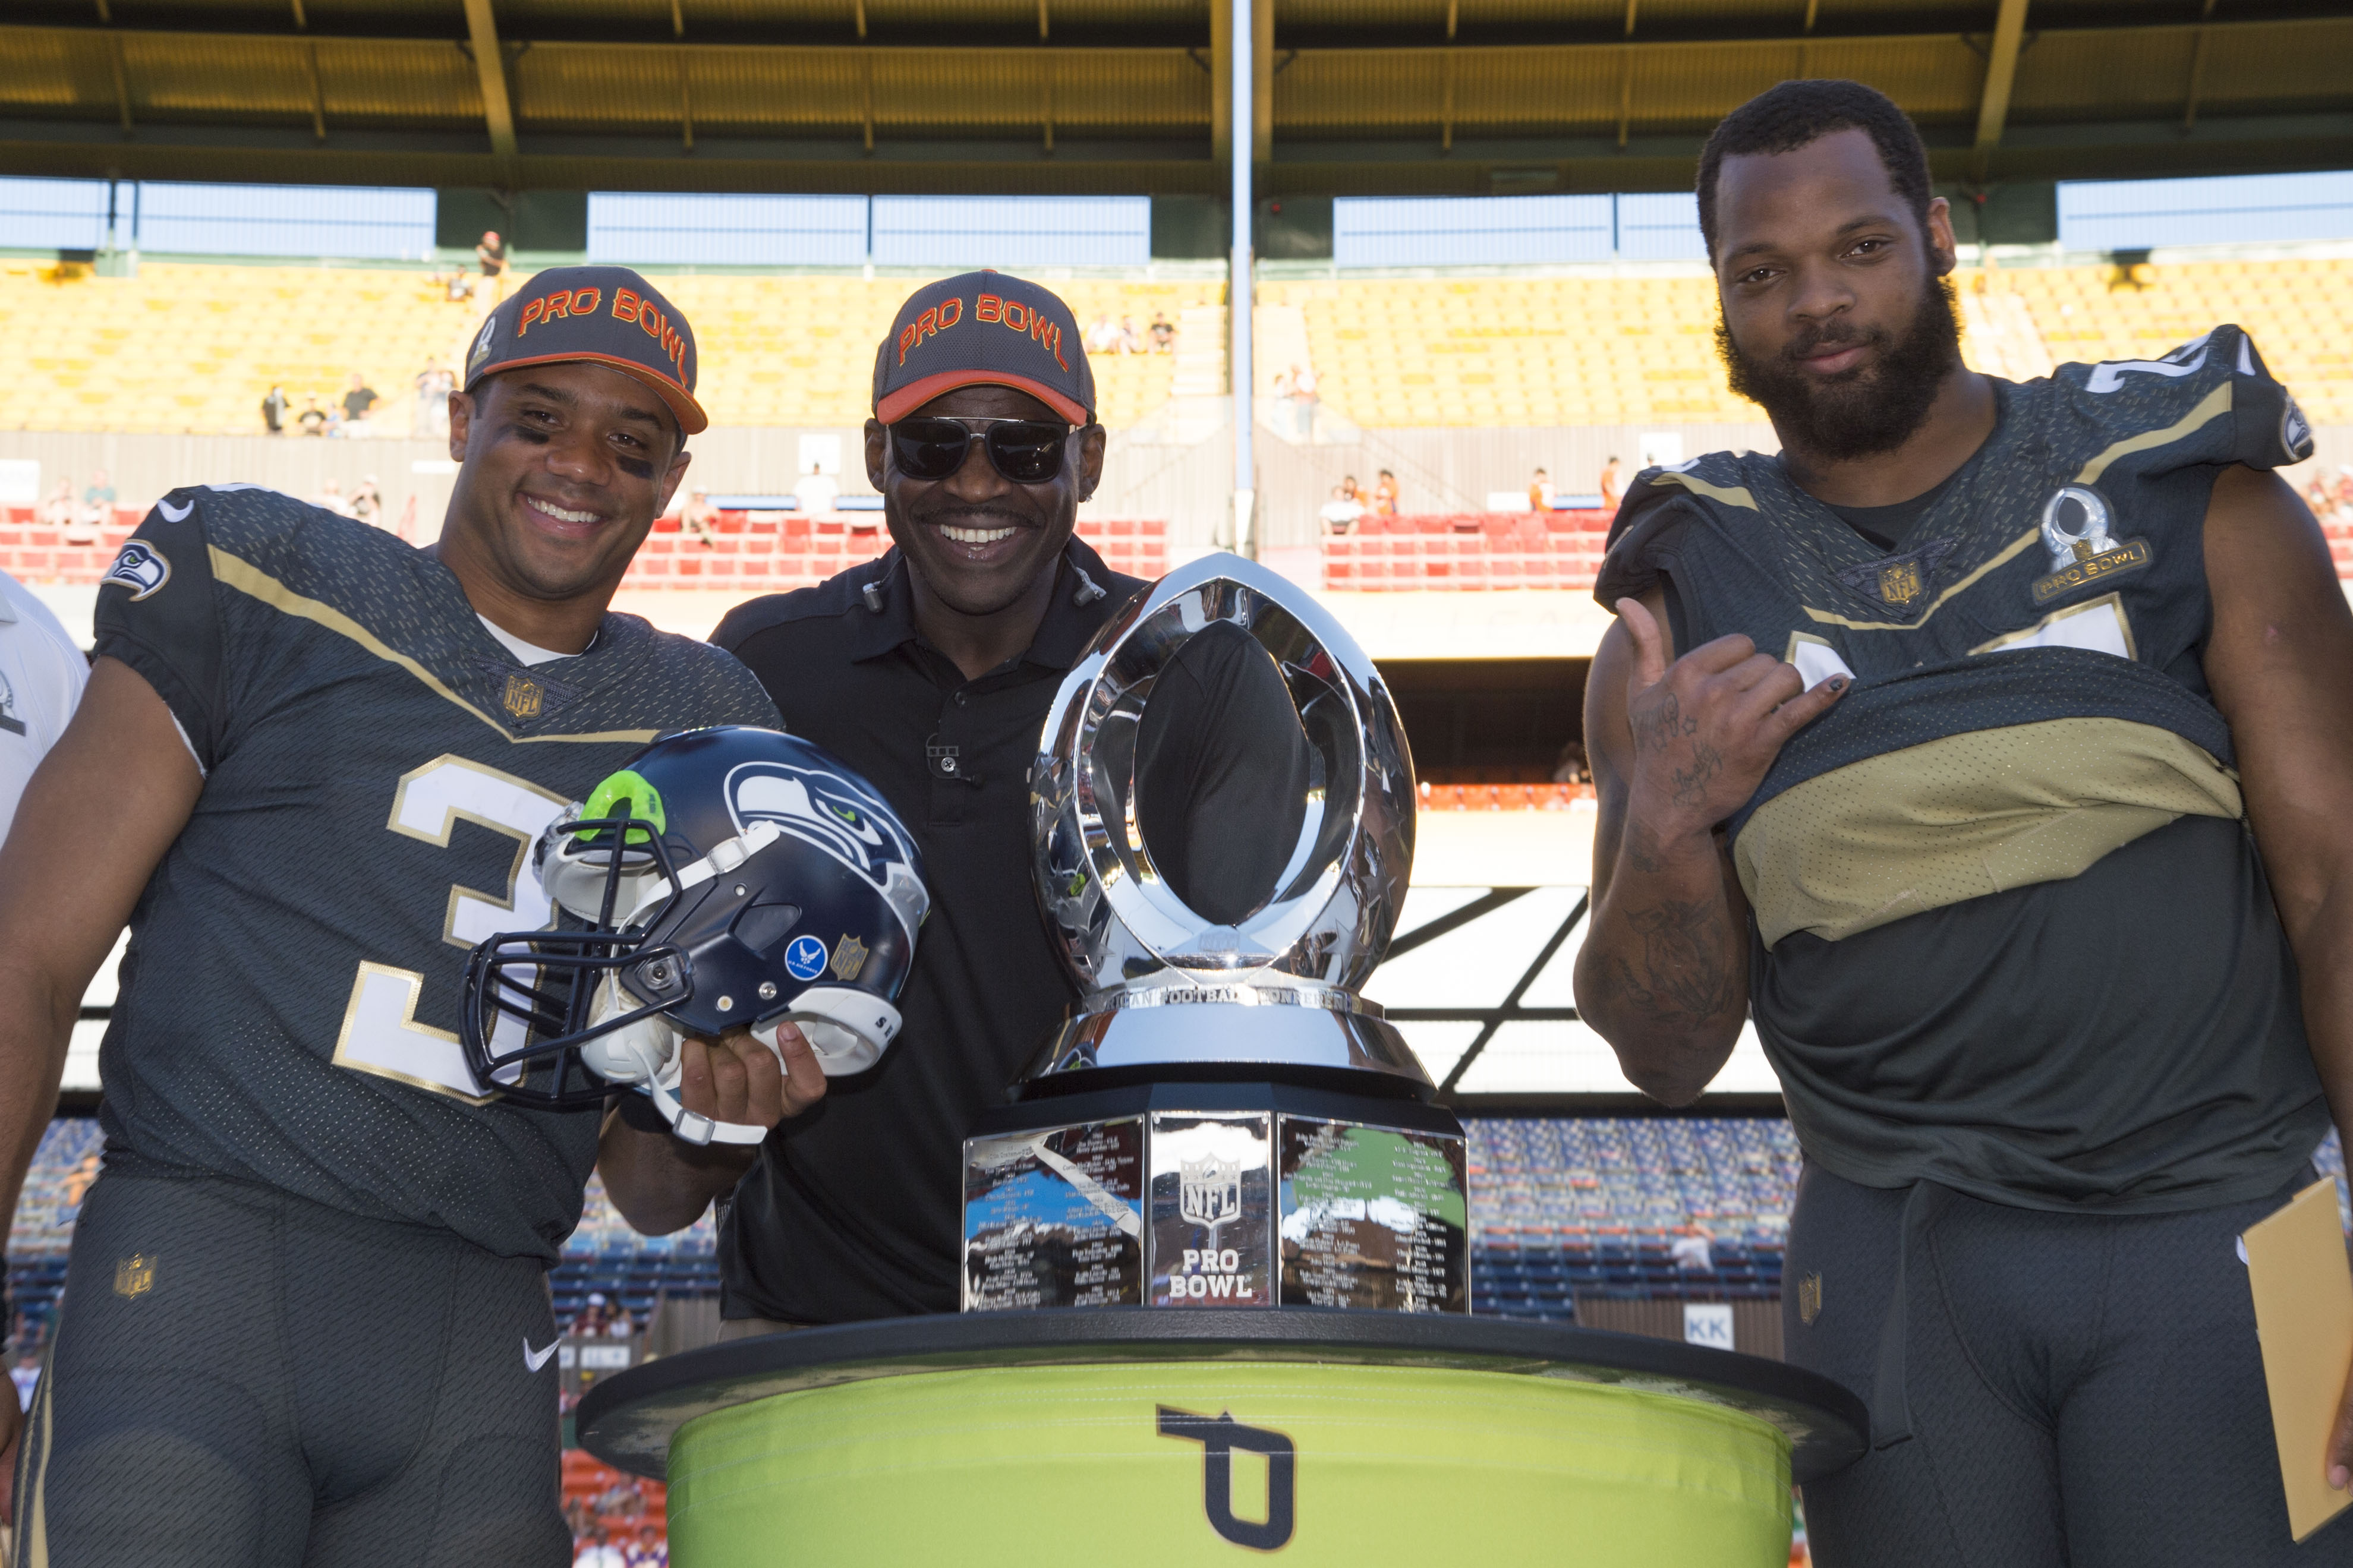 The Seahawks made the Pro Bowl fun for a change